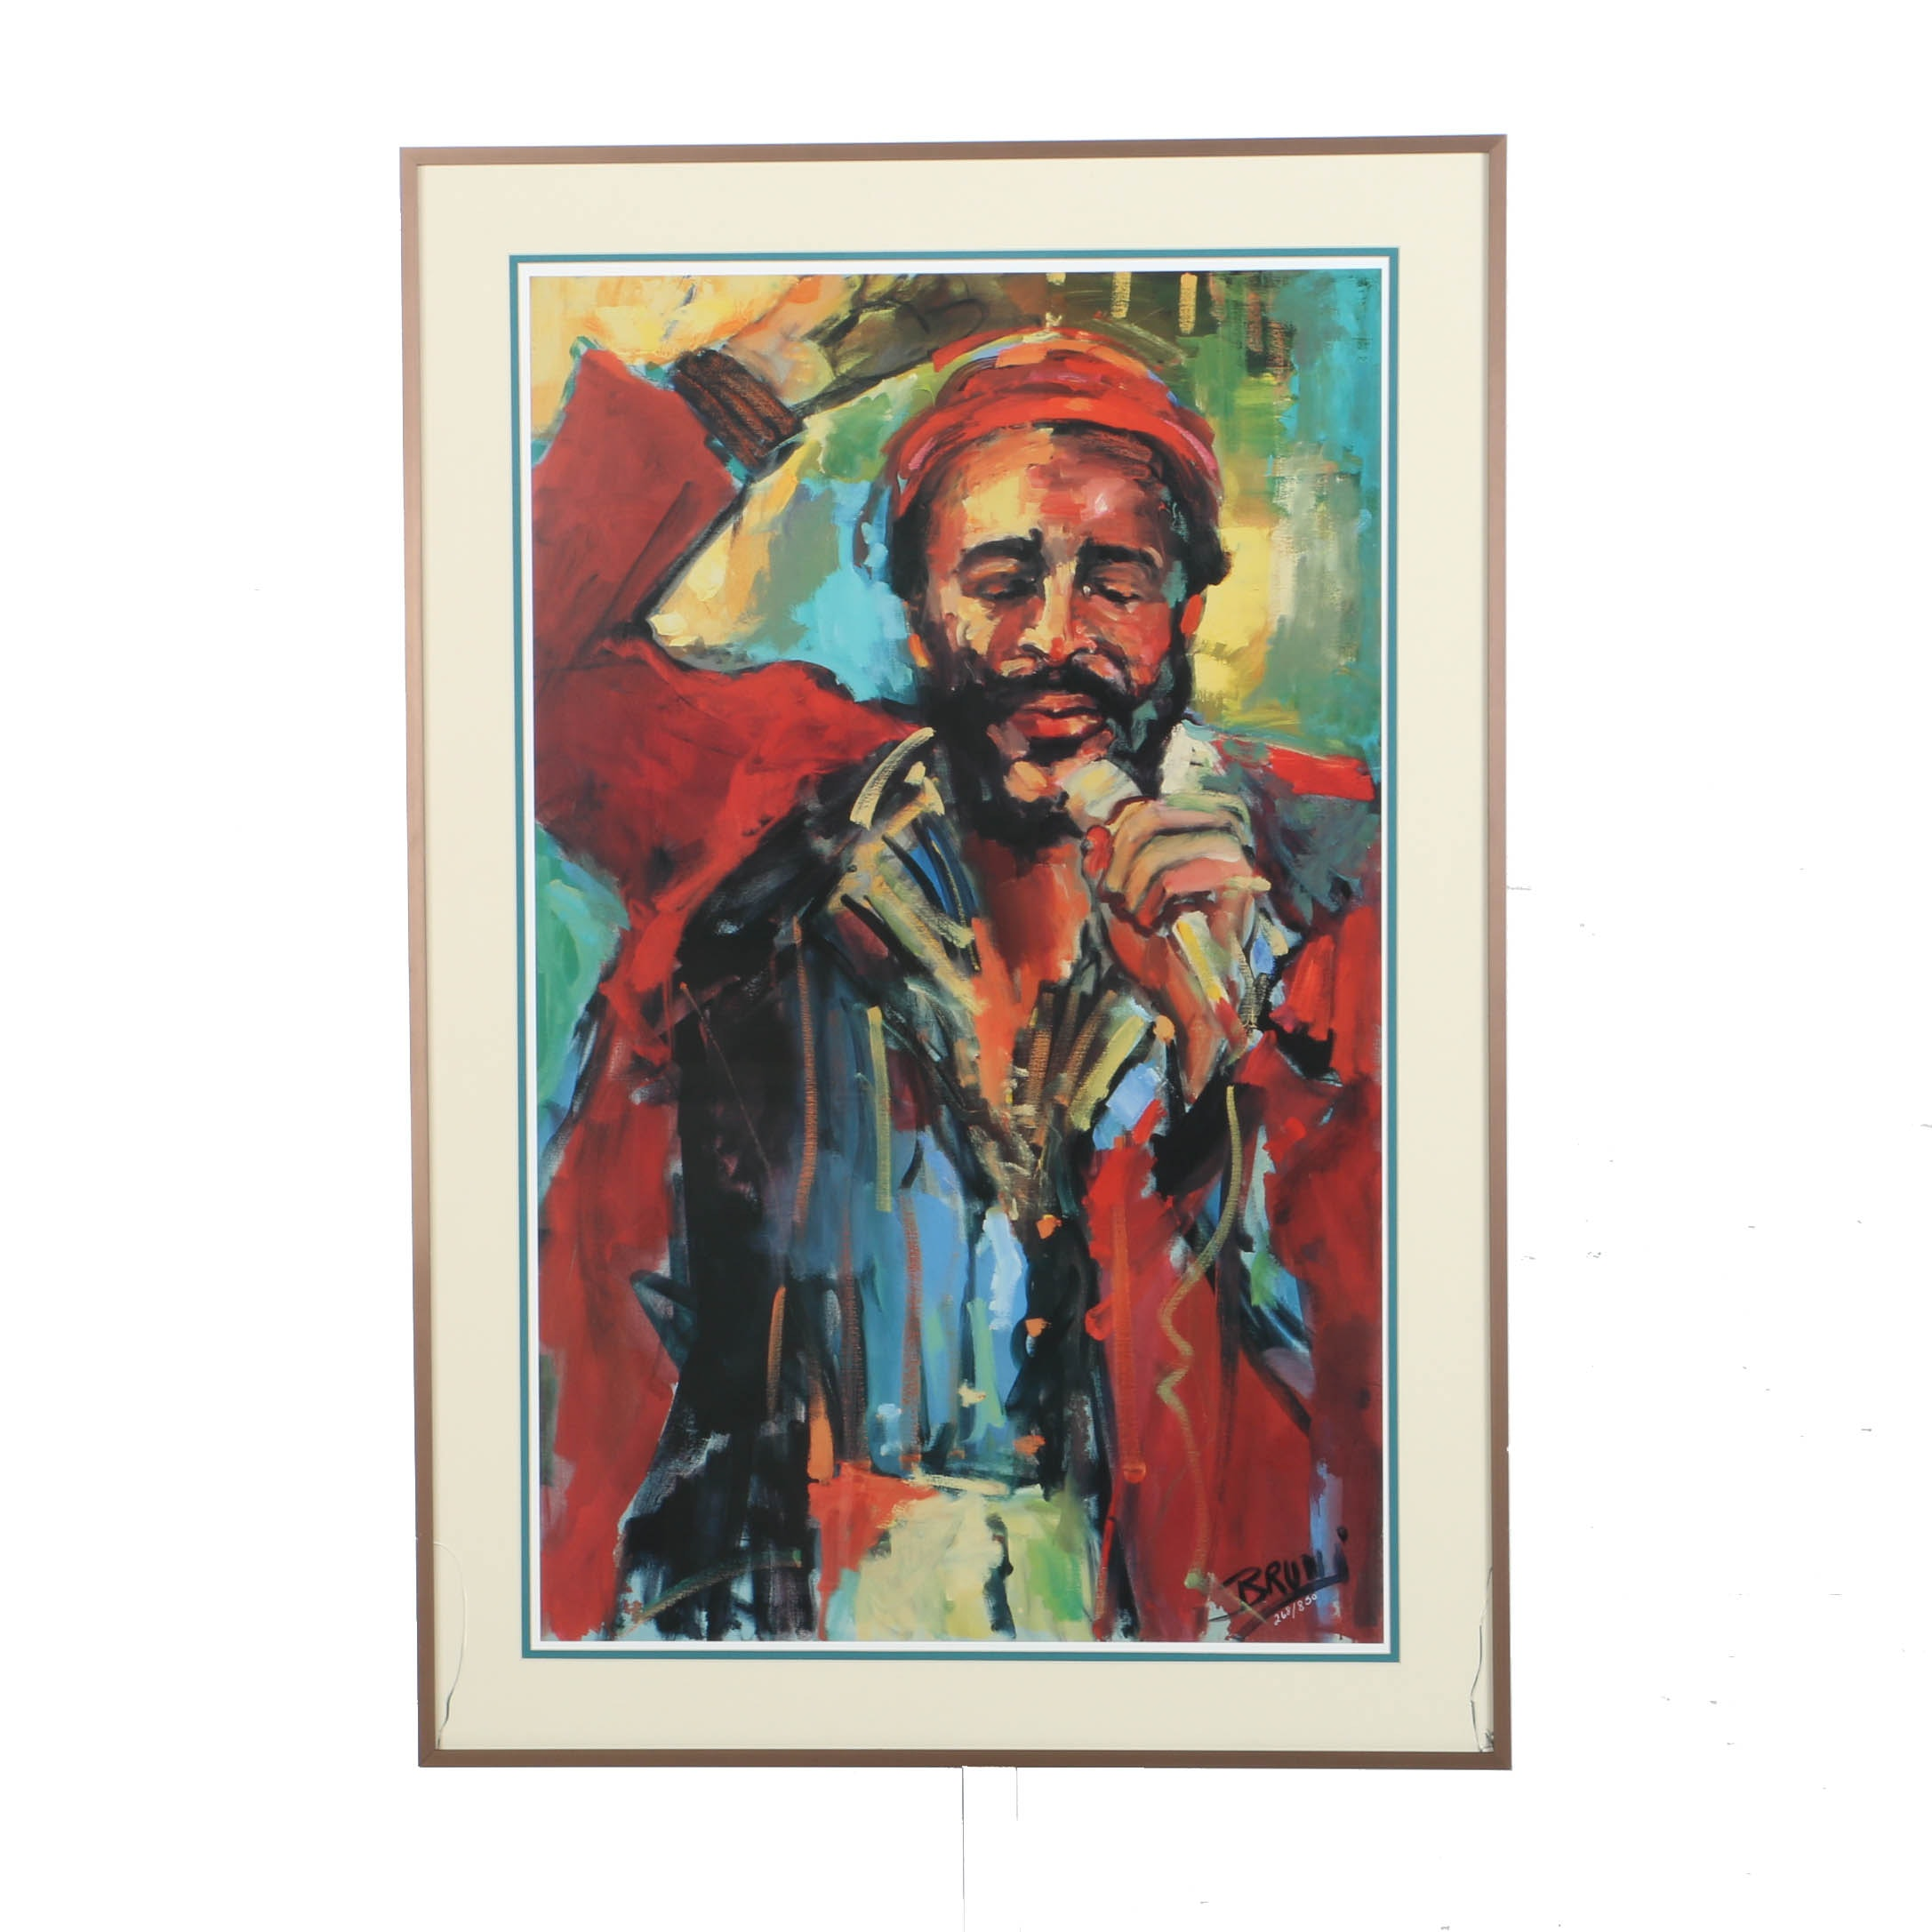 Bruni Limited Edition Offset Lithograph of Marvin Gaye